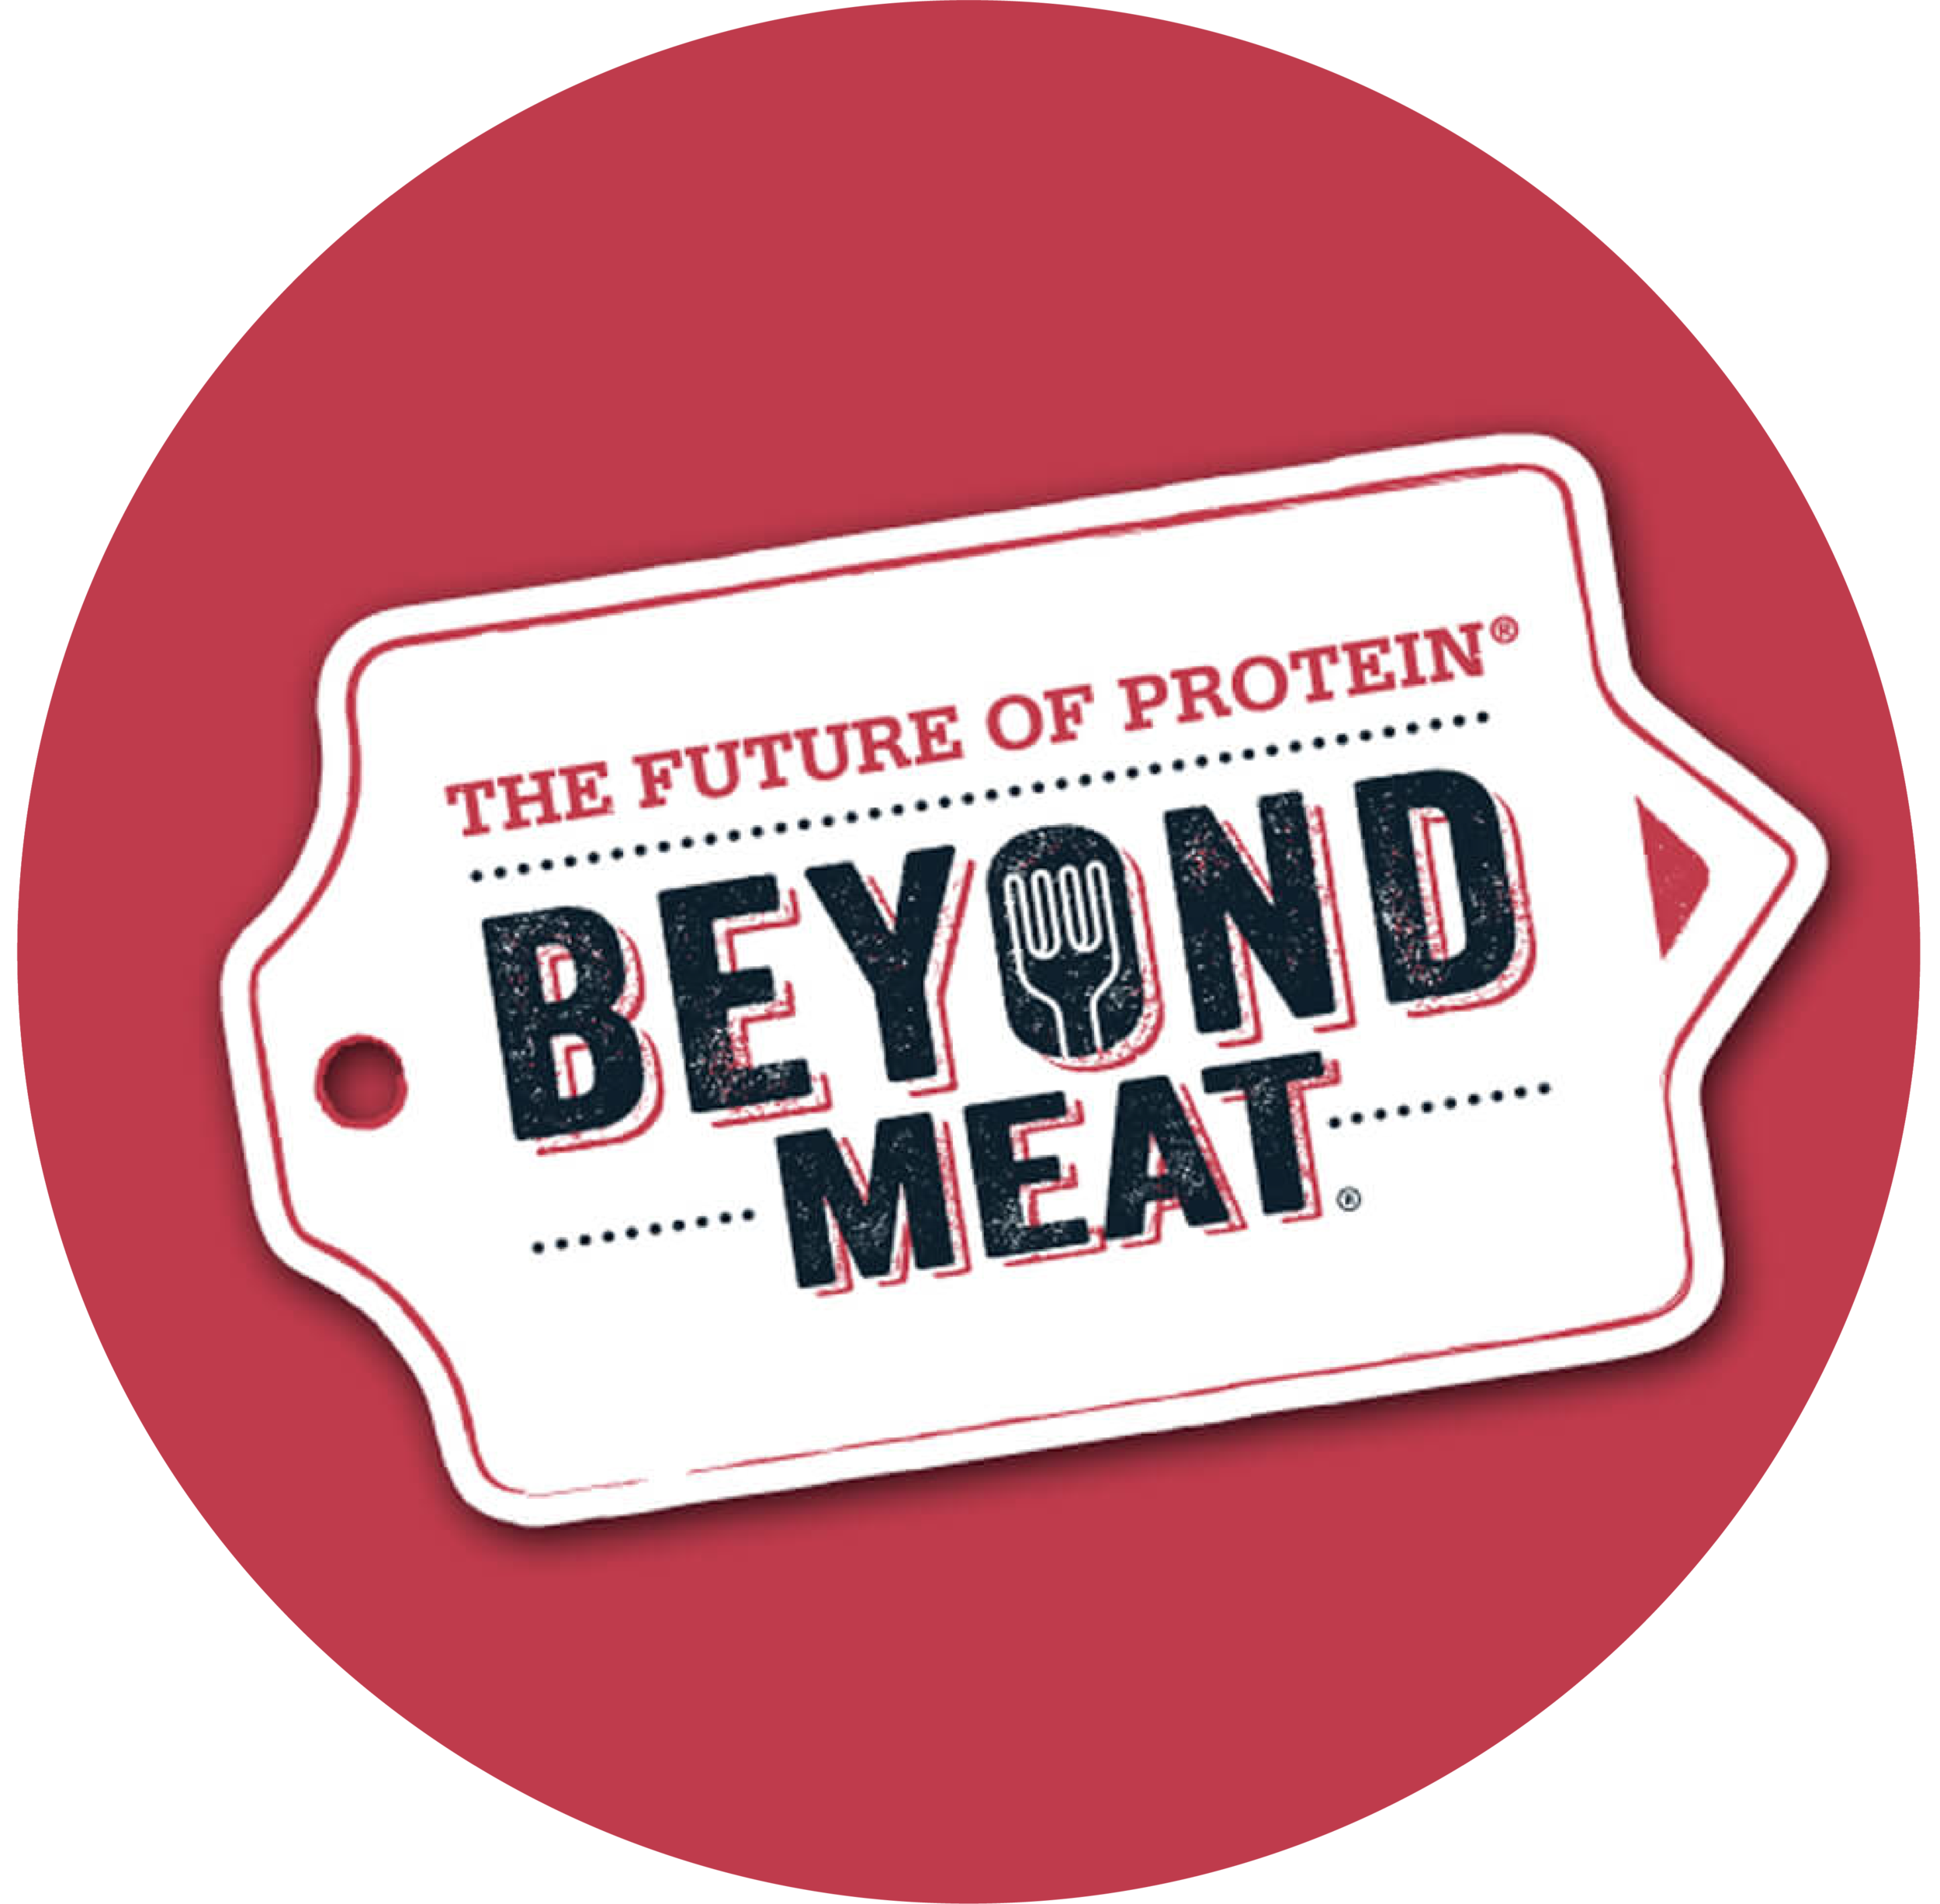 Beyond-meat-new-facility-header-1500x800 round.png